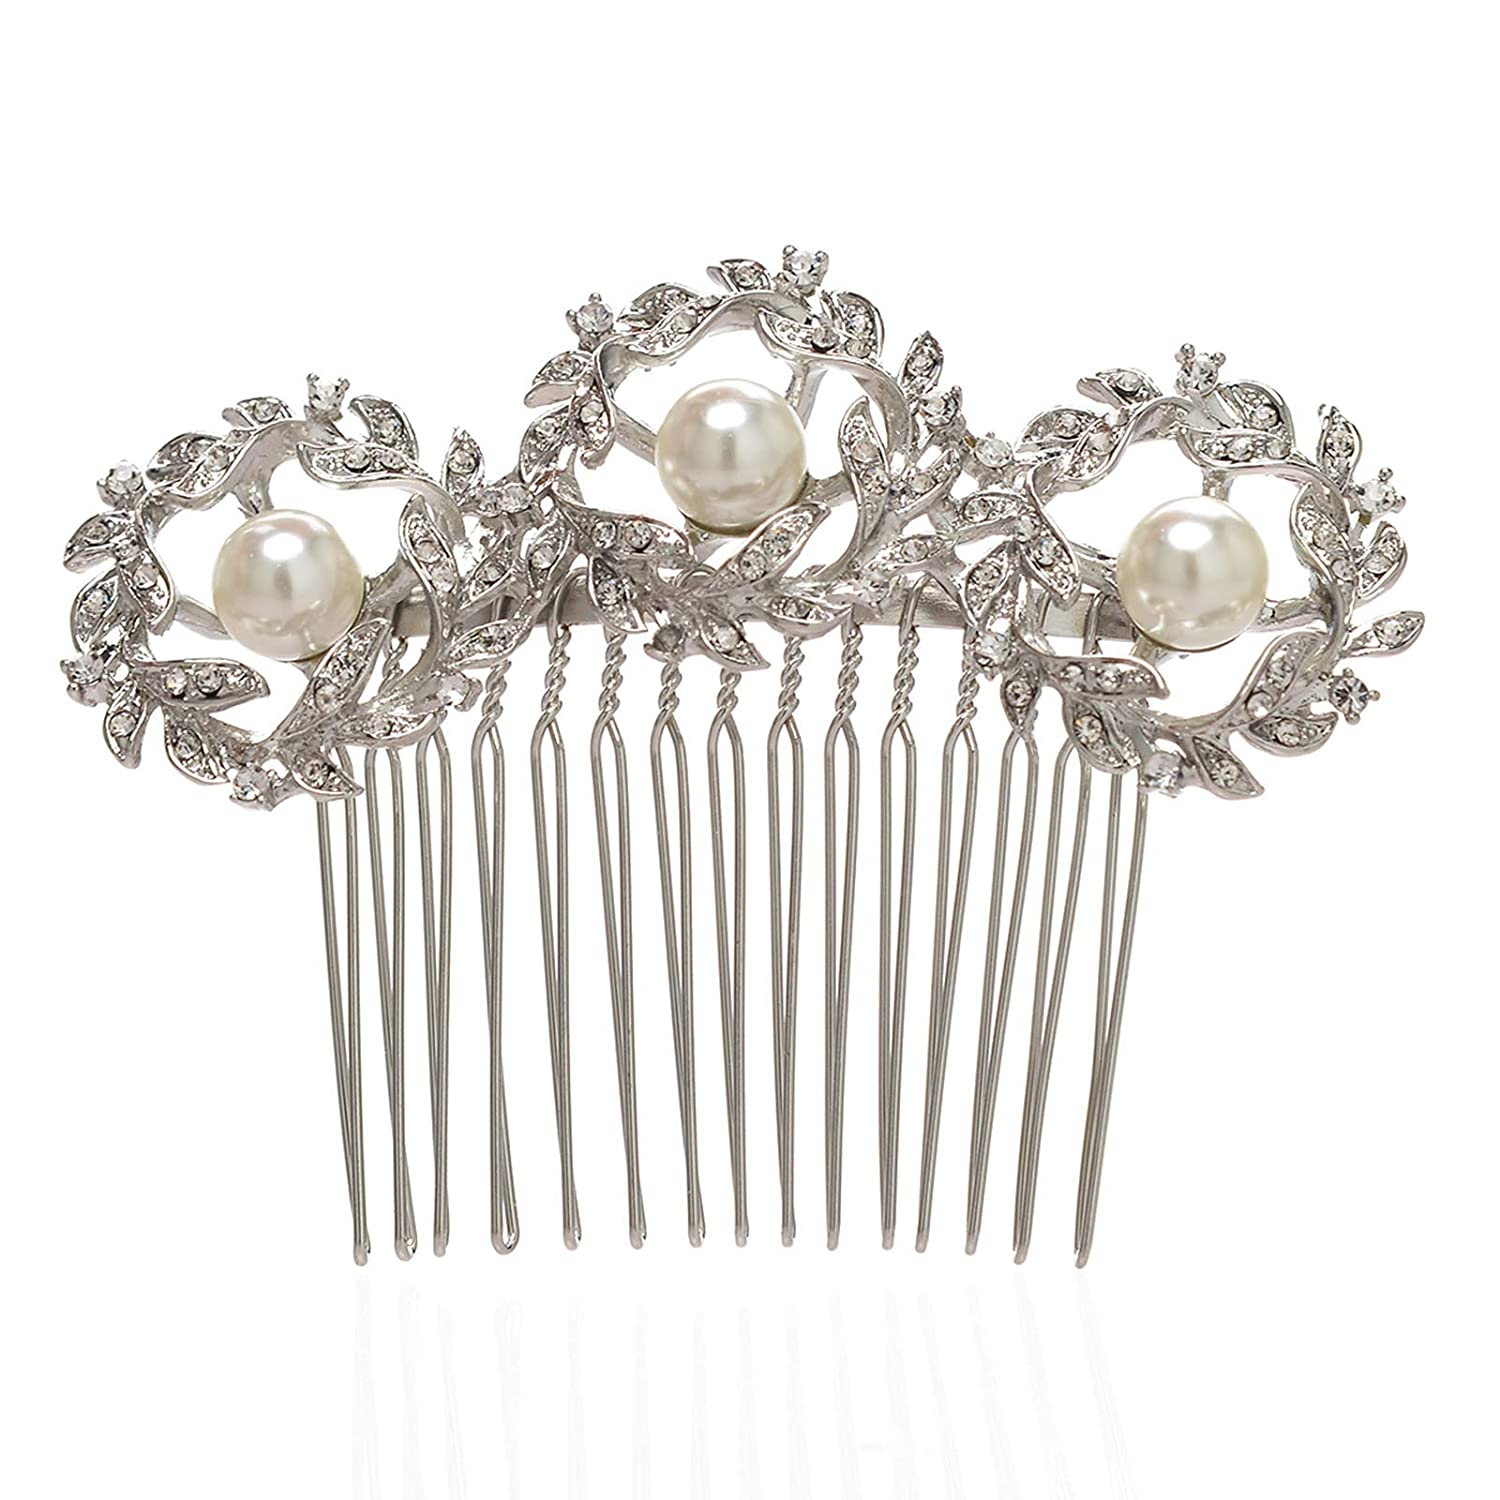 SWEETV Ivory Flower Wedding Hair Comb Pearl Clip Bridal Headpieces Women Hair Accessories for Brides SVJFS1671C12